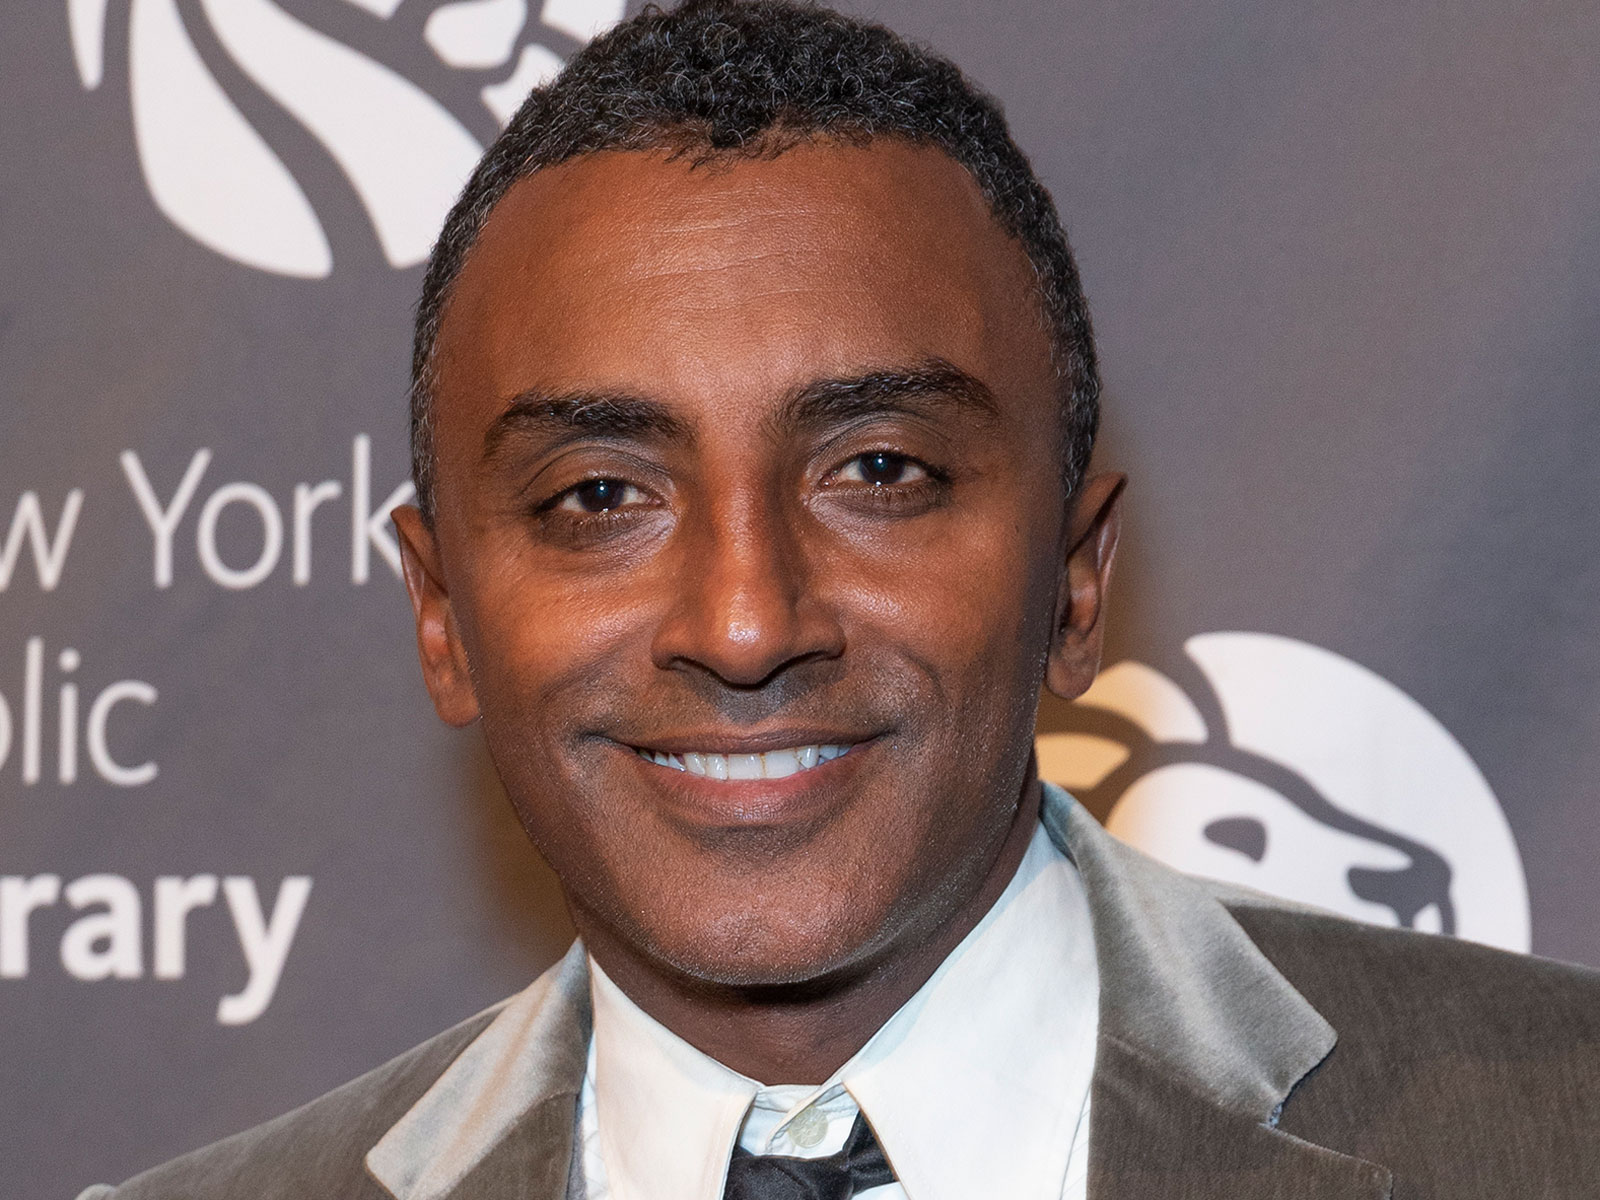 Marcus Samuelsson Named 'Chief Culinary Coach' of New York City F.C.